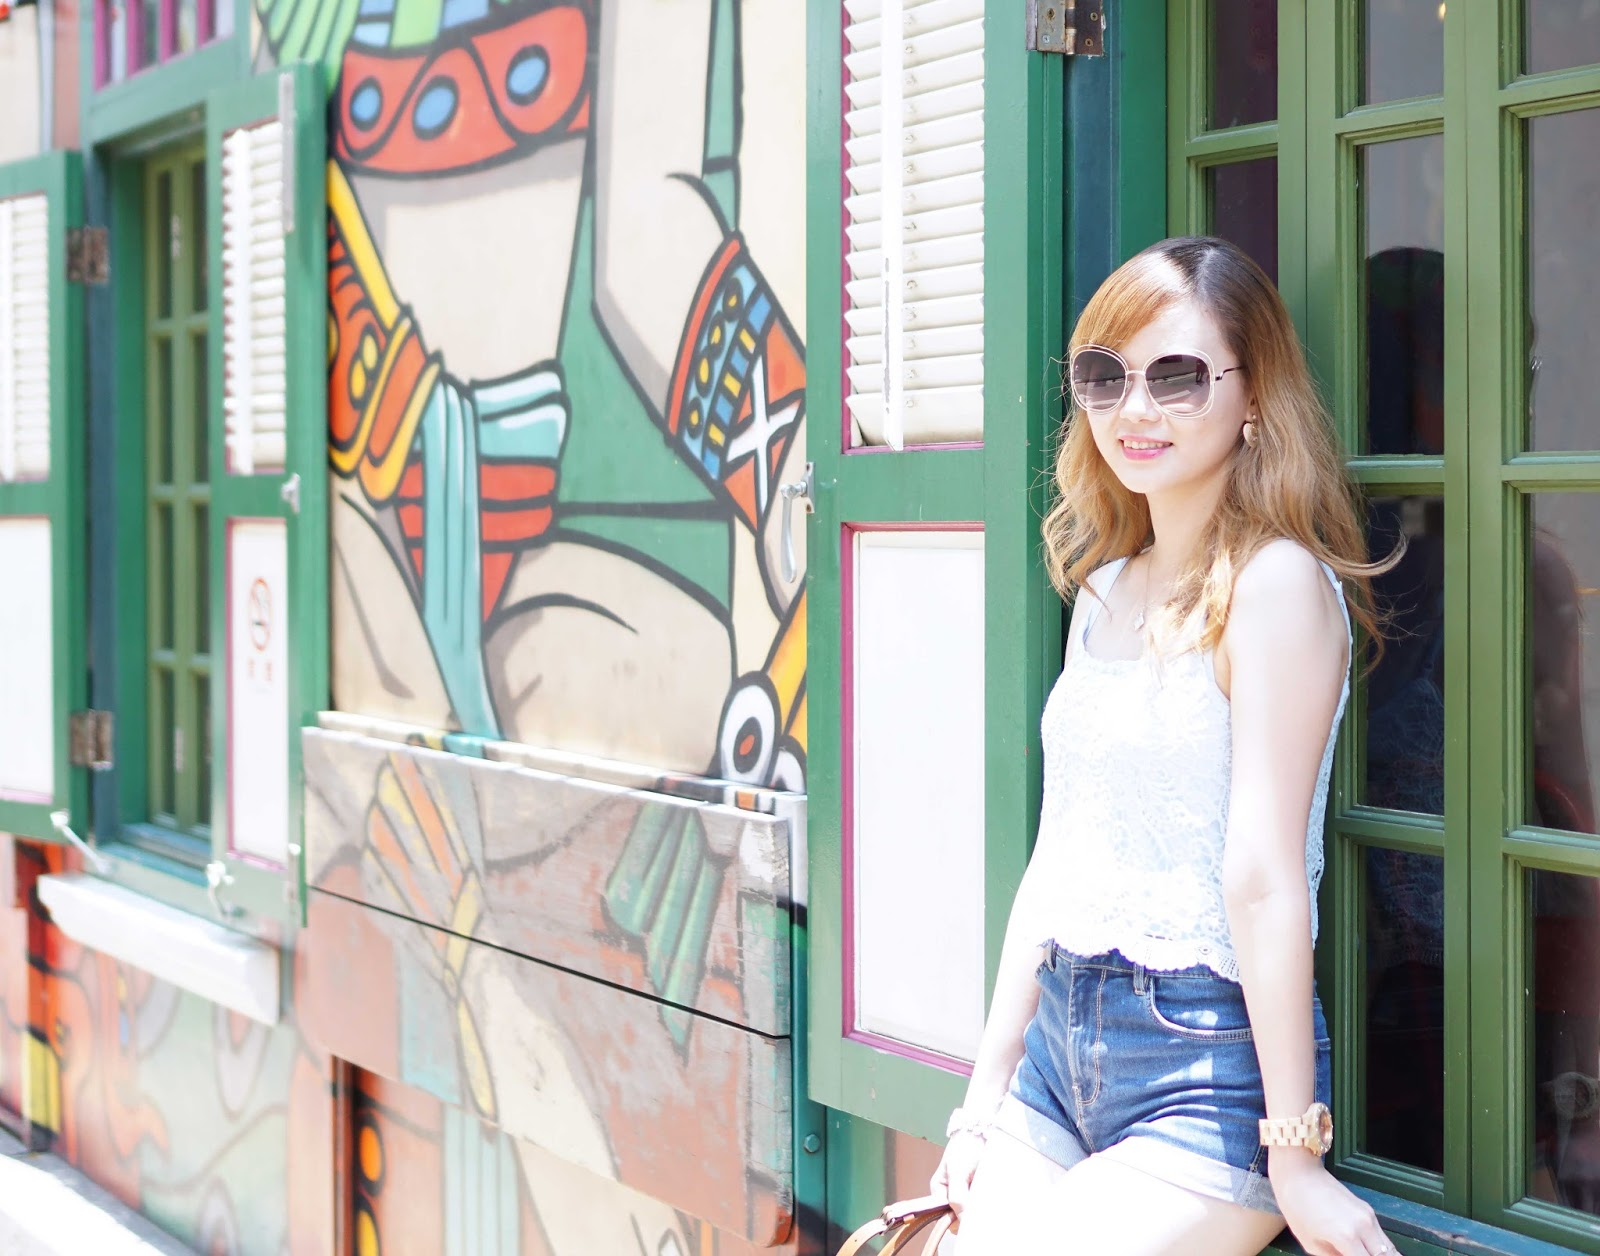 travel, singapore, haji lane, travel to singapore, travel with jean milka, haji lane, haji lane singapore, style, fashion, ootd, fashion blogger, blogger, travel